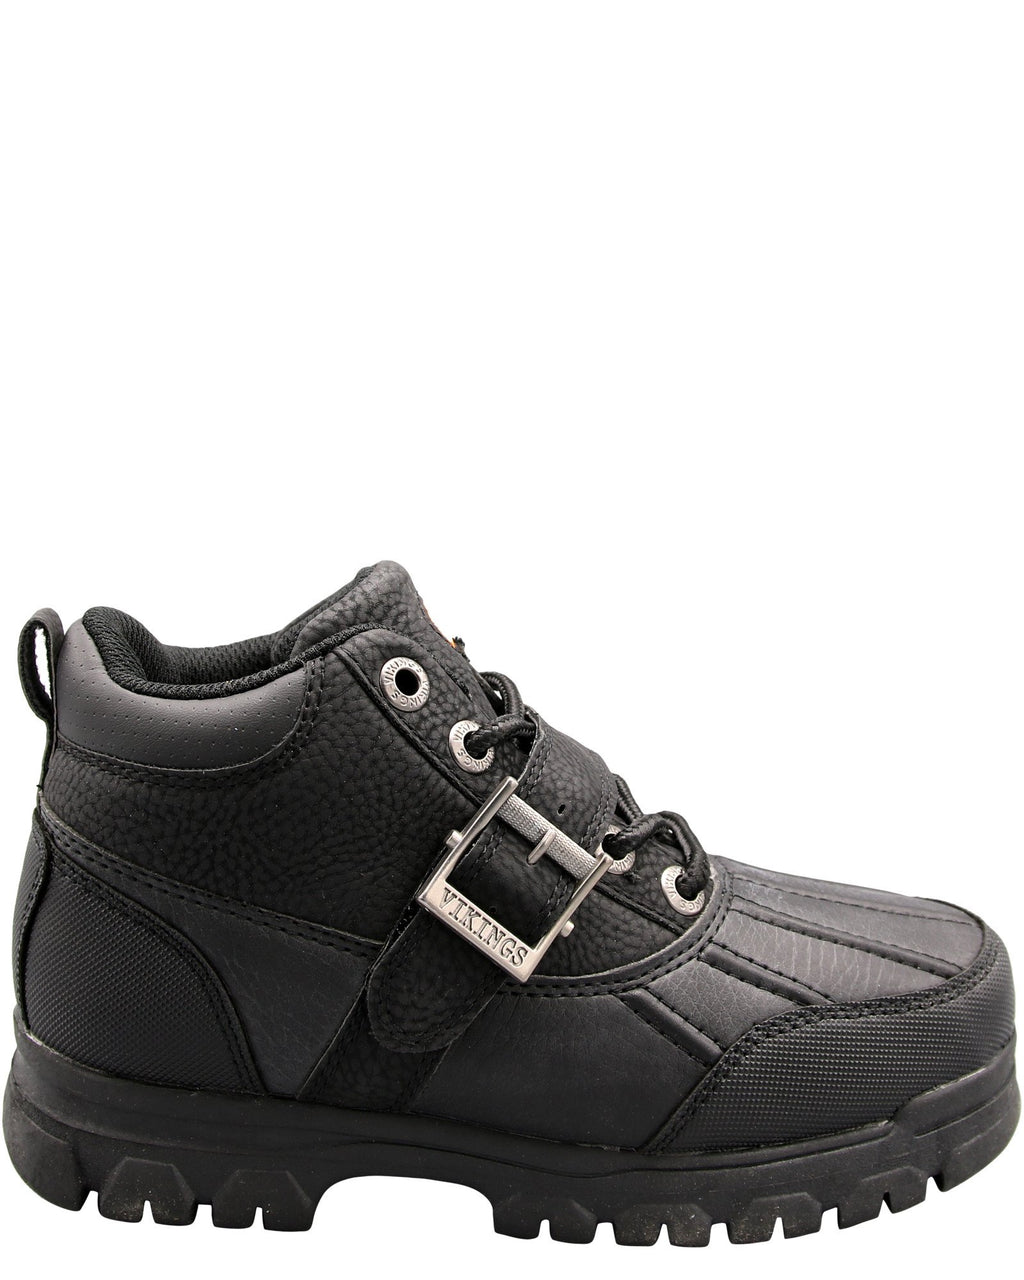 Boy's Iriving Lace Up Buckle Hiking Boots (PreSchool)